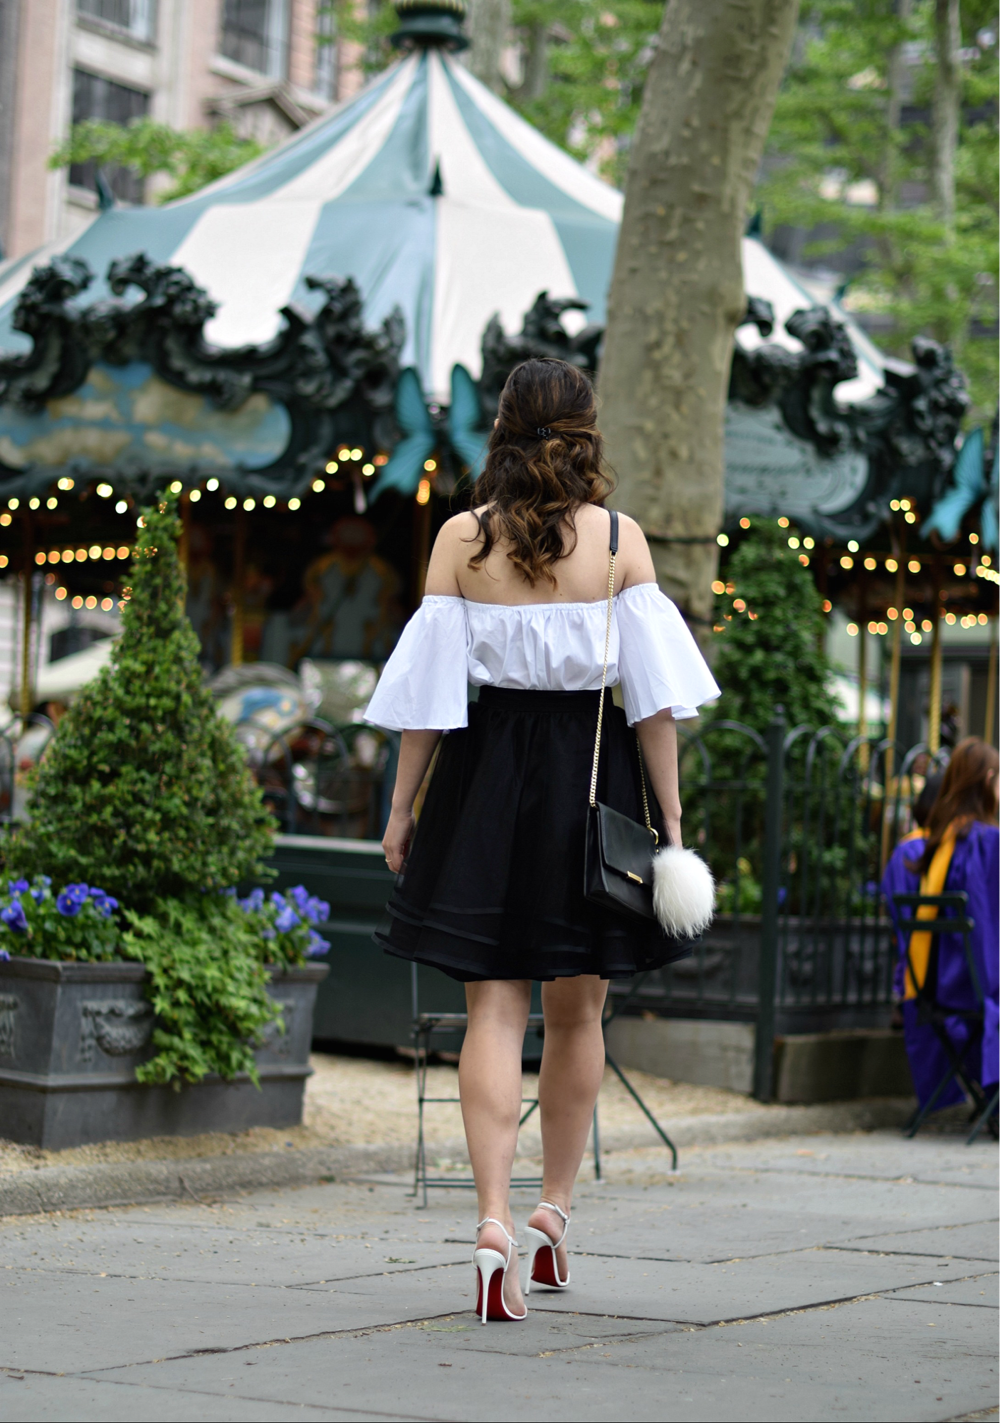 Naomy Stern Couture Custom Tulle Skirt White Heart Louboutins & Love Fashion Blog Esther Santer NYC Street Style Blogger Christian Louboutin Outfit OOTD Elegant Model Photoshoot Cold Shoulder Top Fancy Ivanka Trump Bag Purse Pom Pom Girl Pretty Choker.PNG